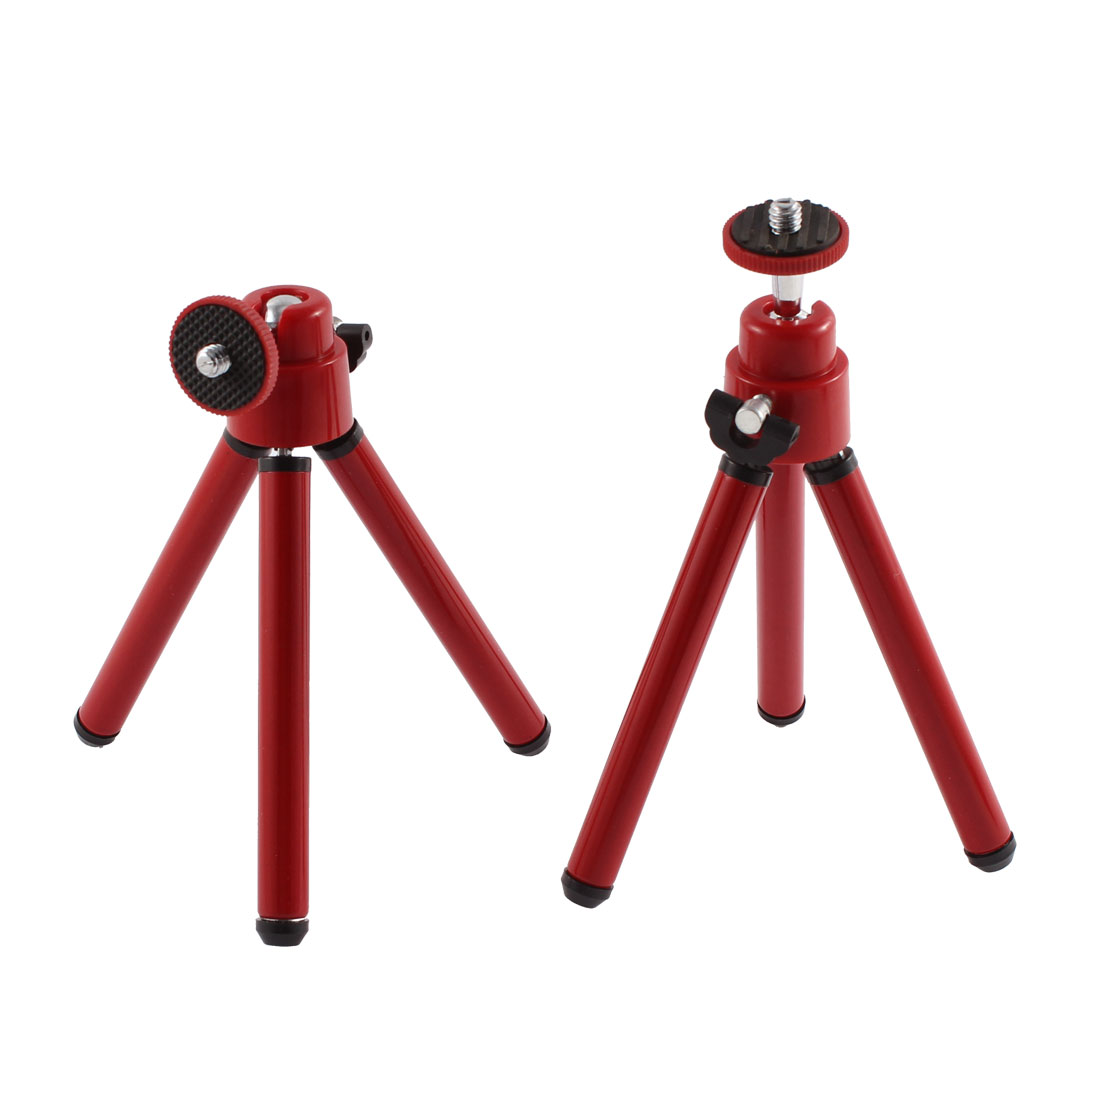 2Pcs Mini Flexible Portable Tripod Stand Holder Red for Digital Camera Phone